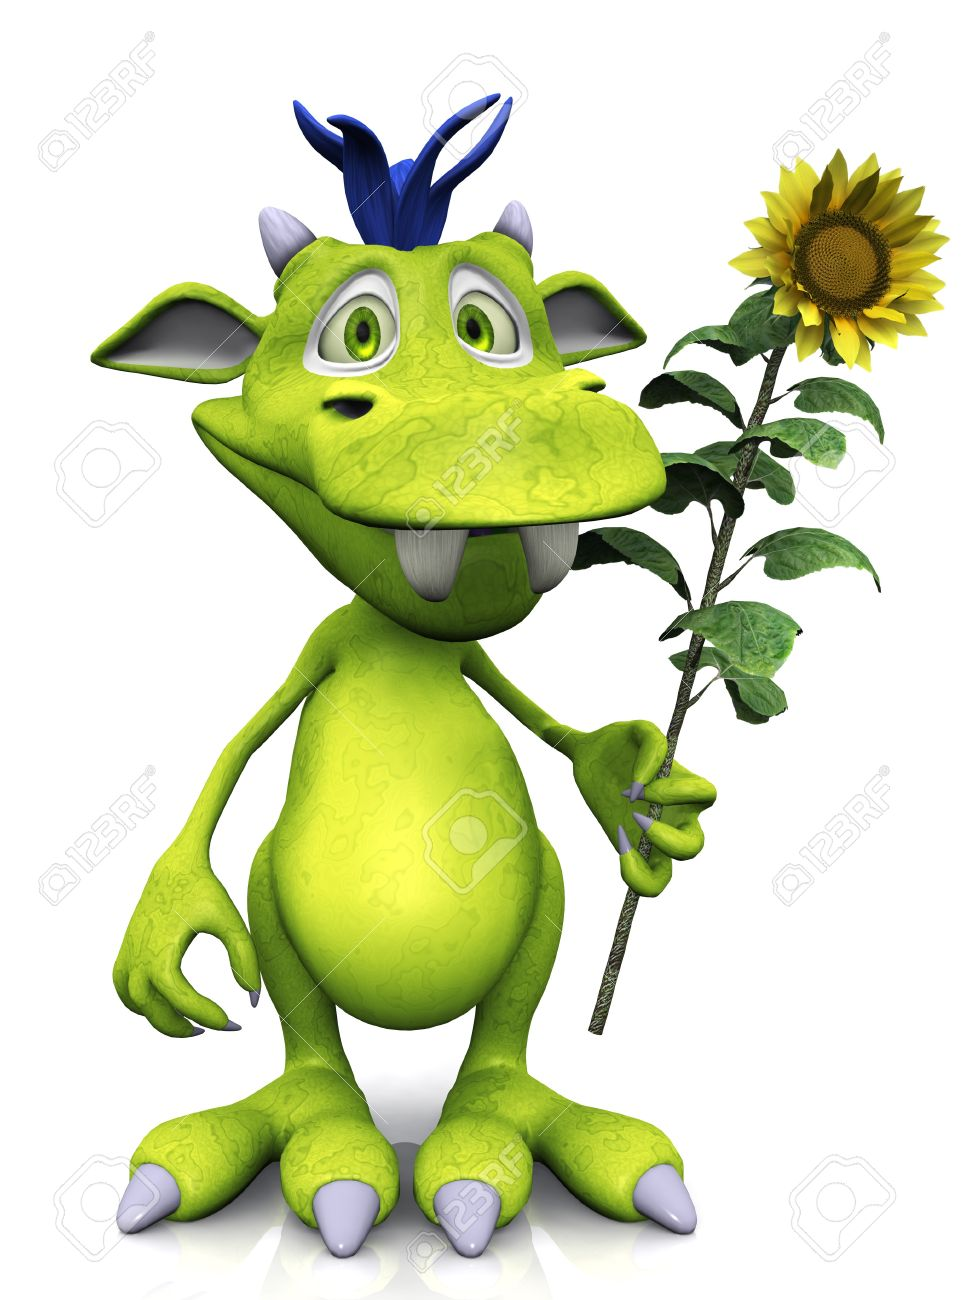 A cute friendly cartoon monster holding a big yellow sunflower in his hand. The monster is green with blue hair. White background. Stock Photo - 8982524